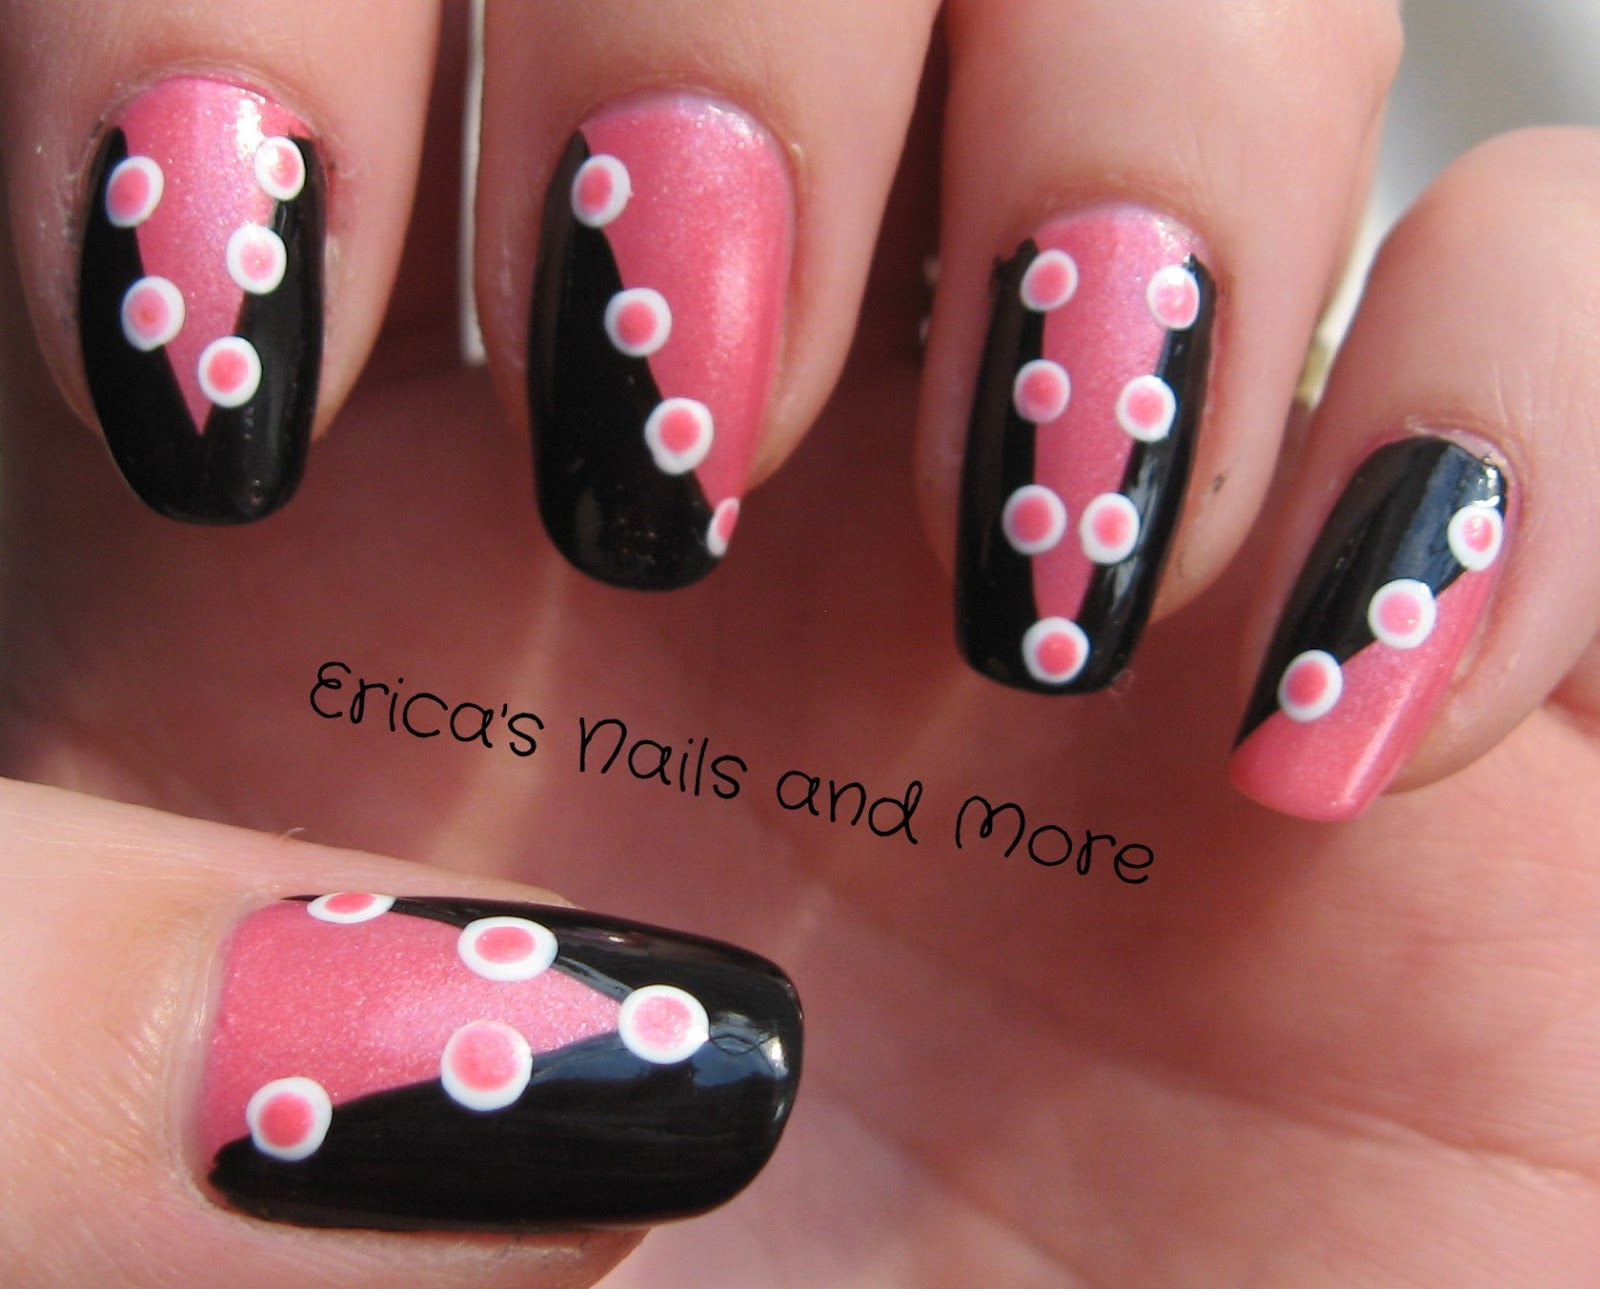 Erica's Nails and More: November Nail Art Challenge Day 6